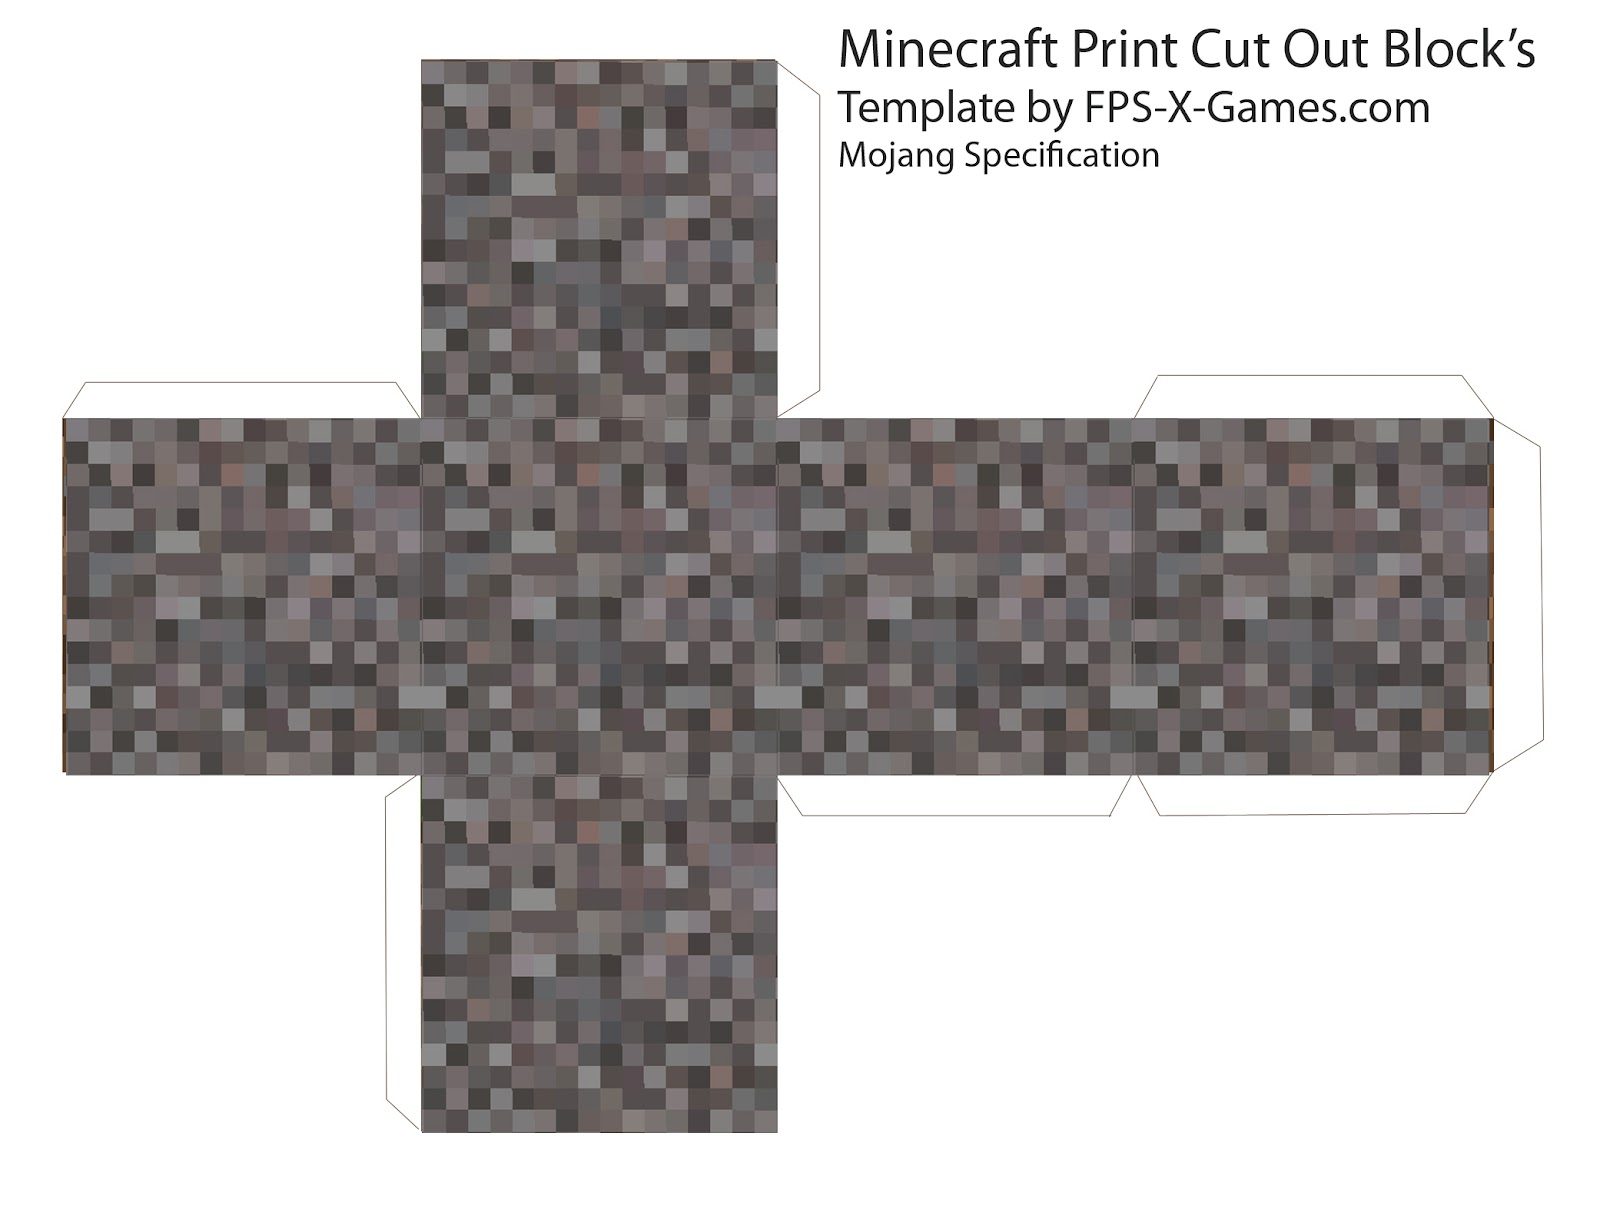 minecraft cut out templates - minecraft blog minecraft cube 39 s printable cut out block 39 s